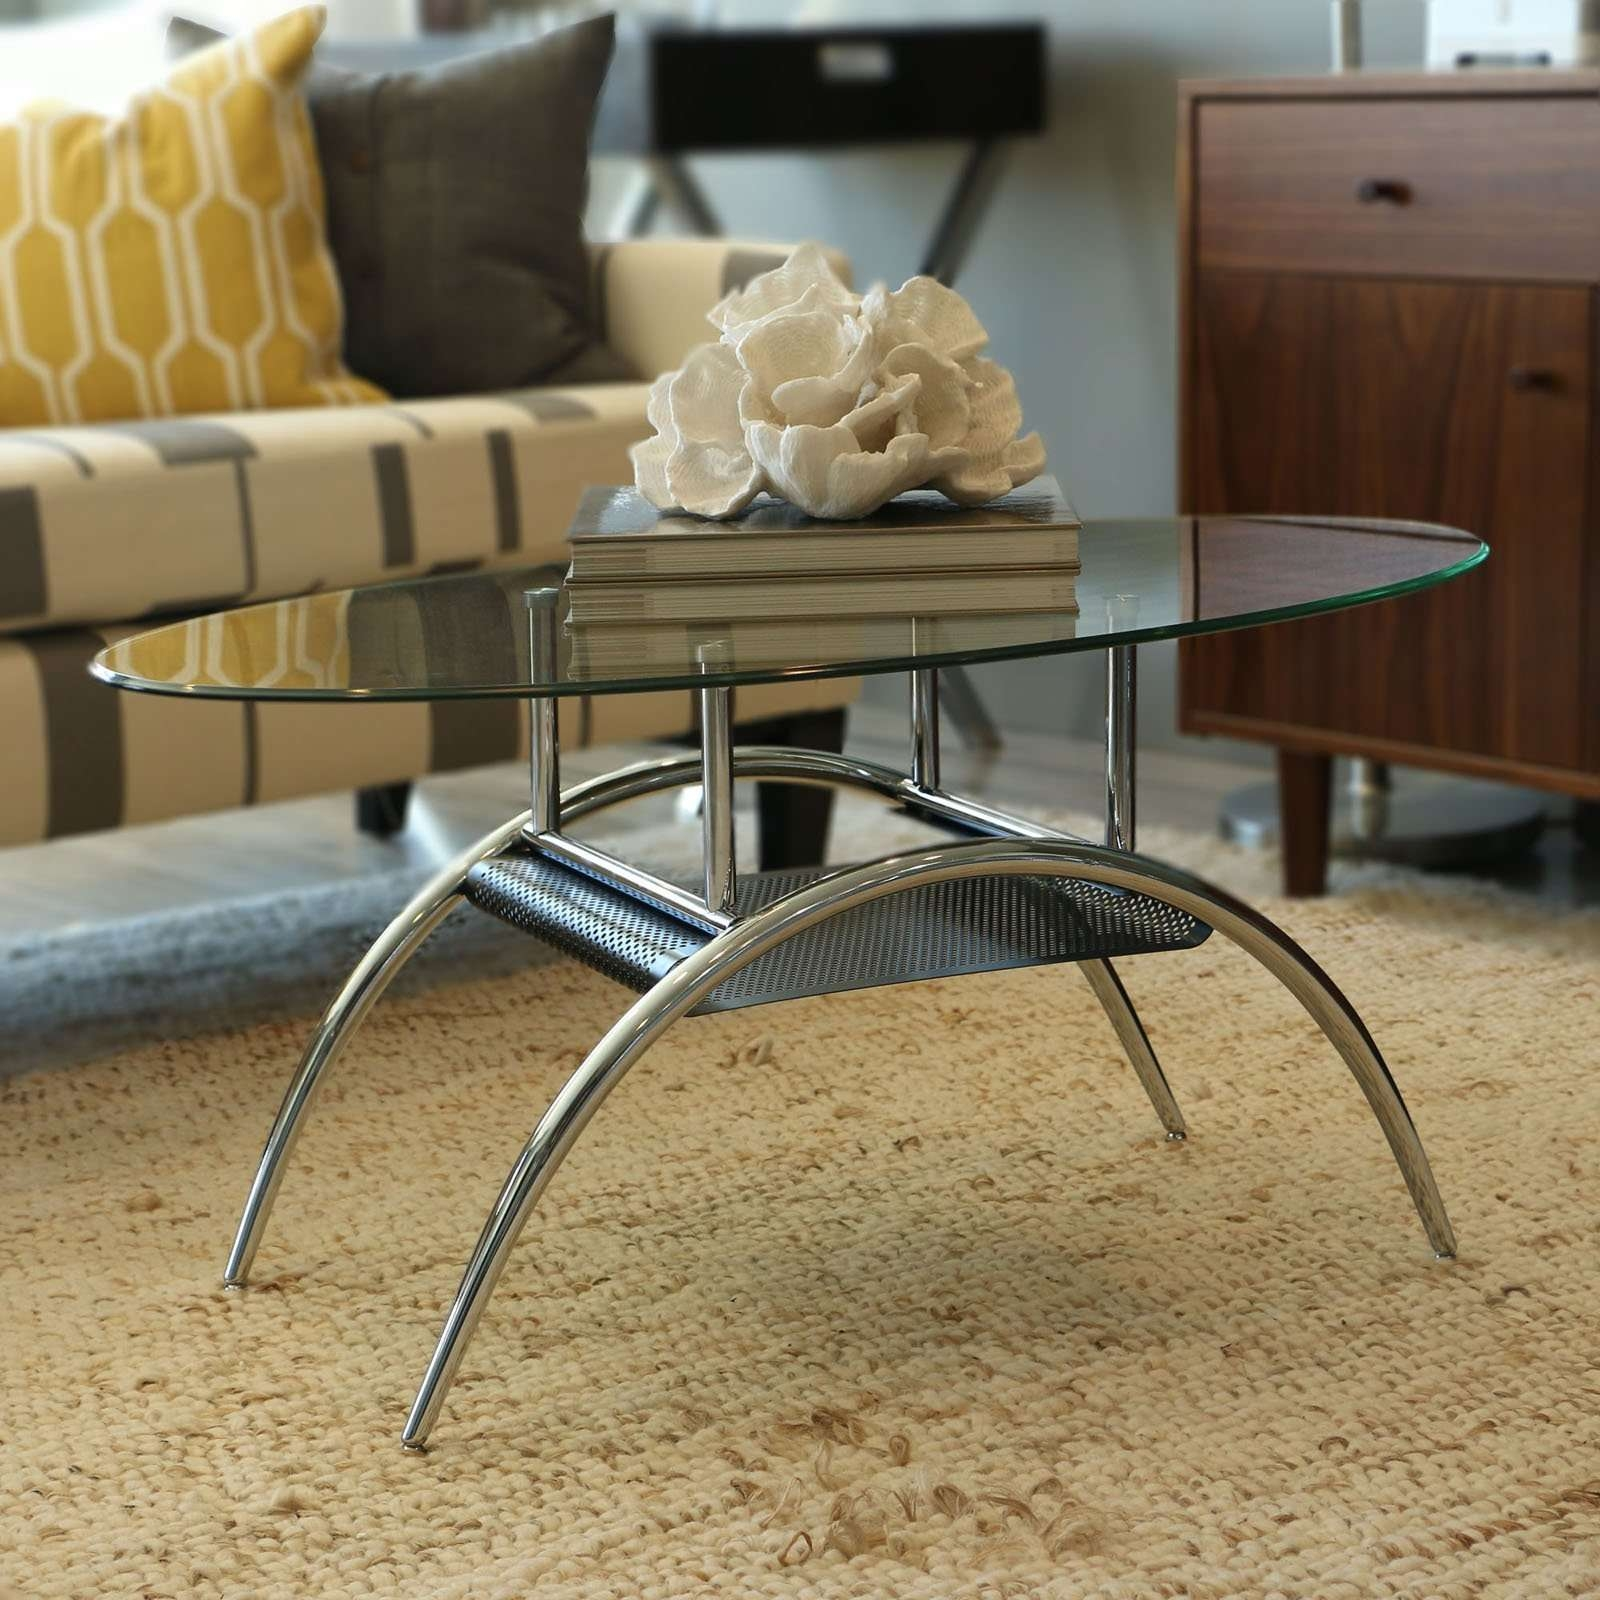 2018 Coffee Tables With Oval Shape With Regard To Walker Edison Oval Glass Coffee Table With Black Mesh Shelf (View 20 of 20)